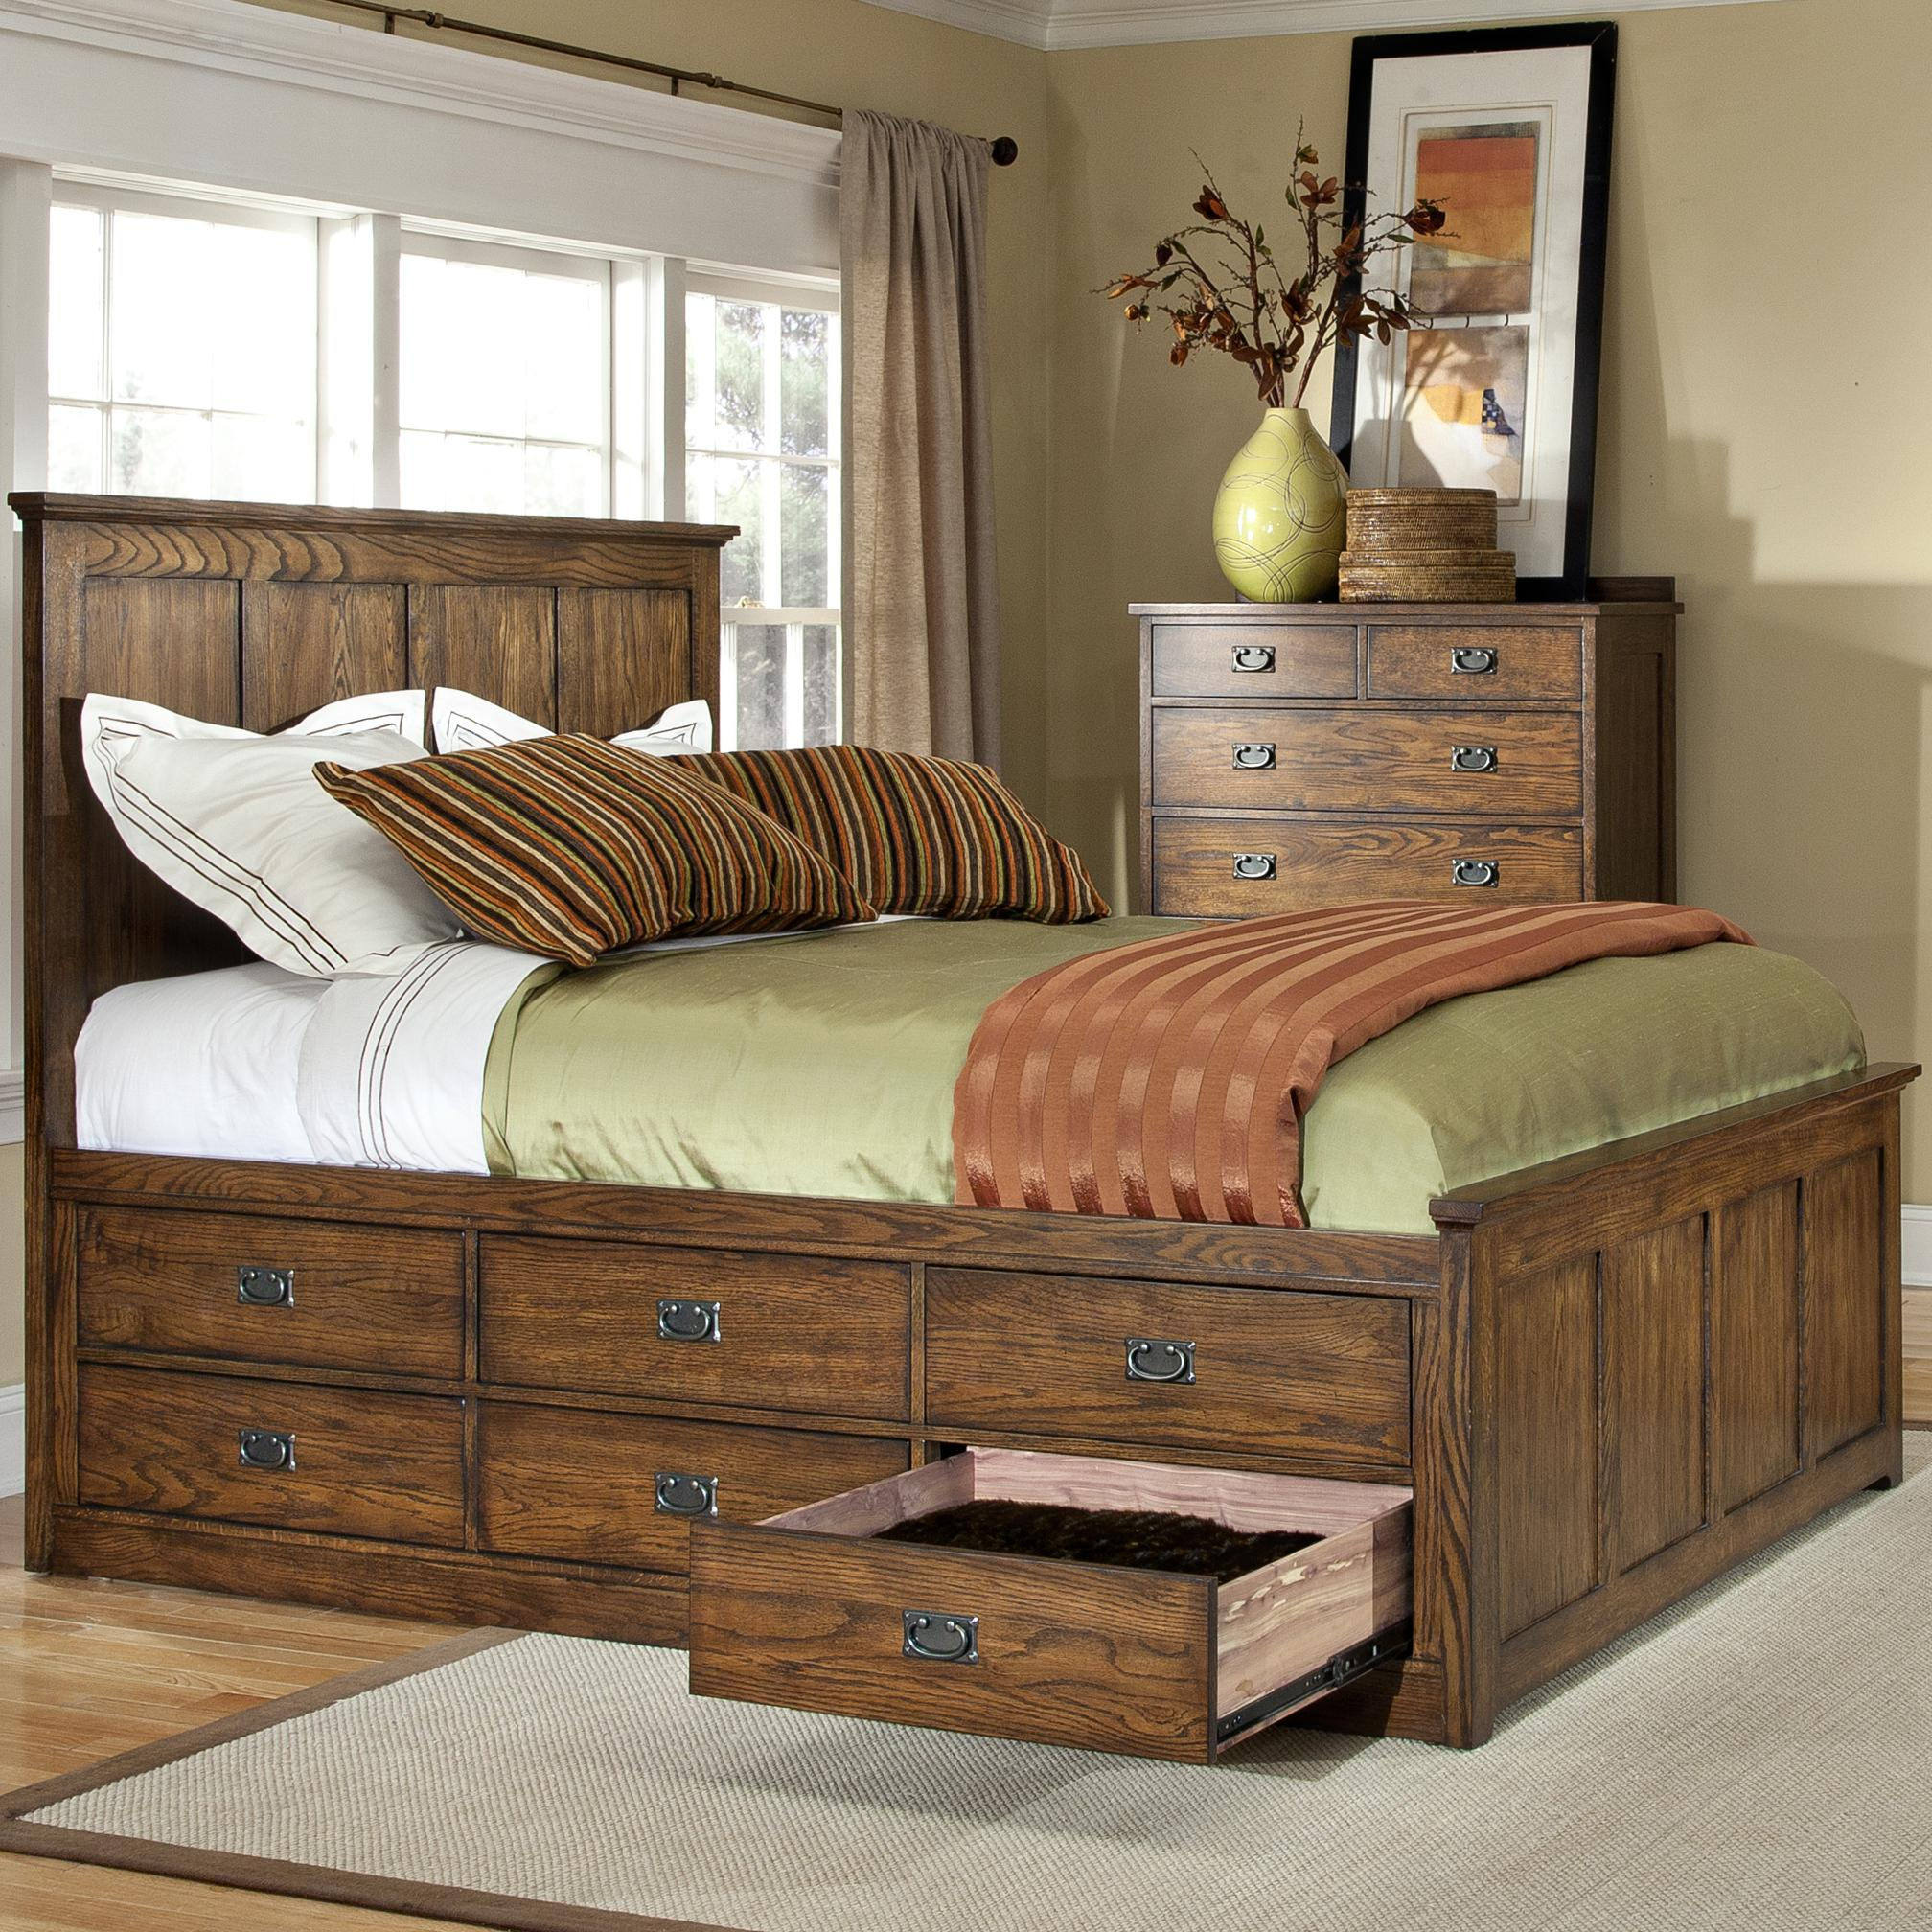 Intercon Oak Park Queen Bed with 9 Storage Drawers - Item Number: OP-BR-5836QS-MIS-C